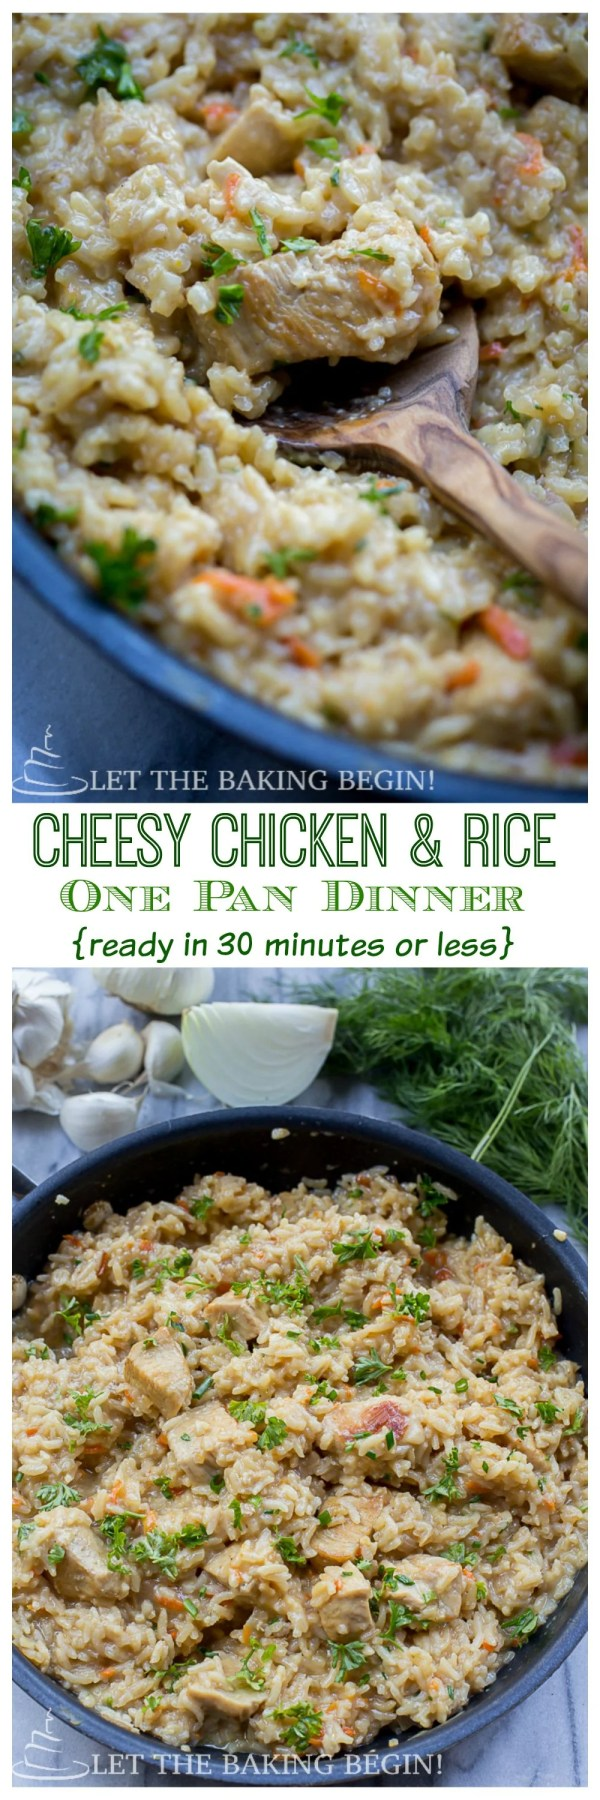 Cheesy Chicken & Rice One Pot Dinner {in 30 Minutes or less)